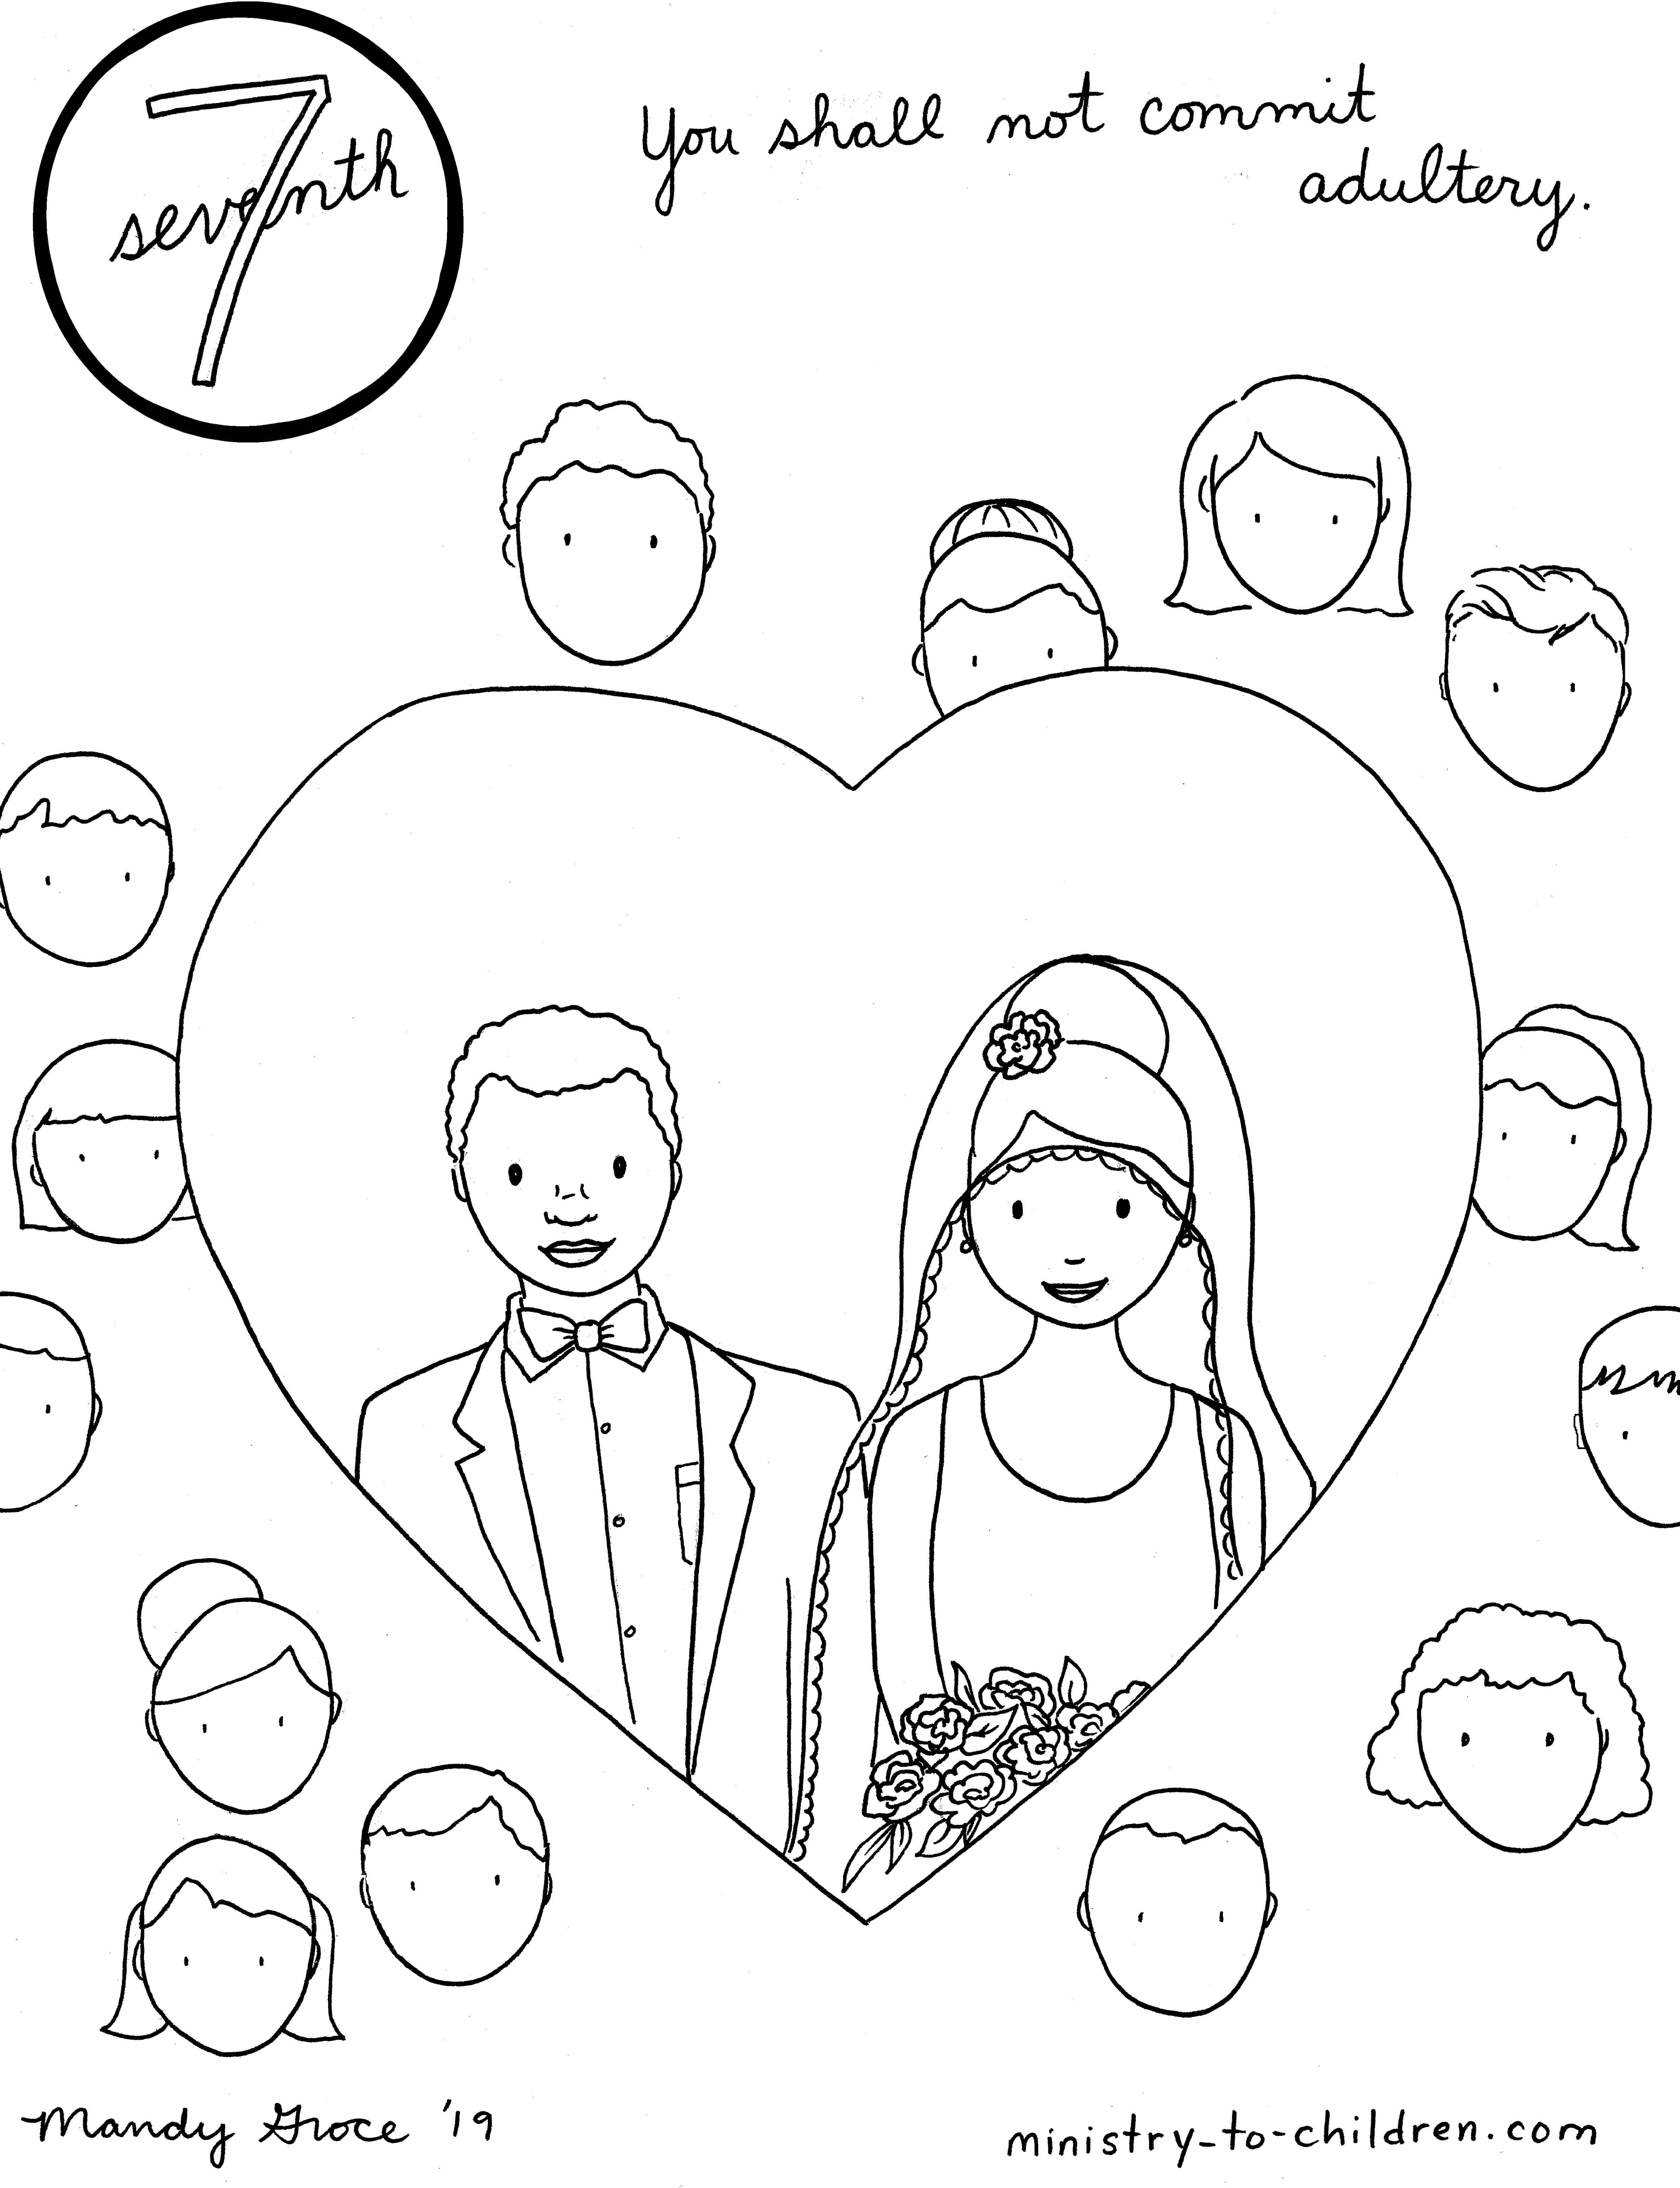 7th Commandment Coloring Page: Not Commit Adultery